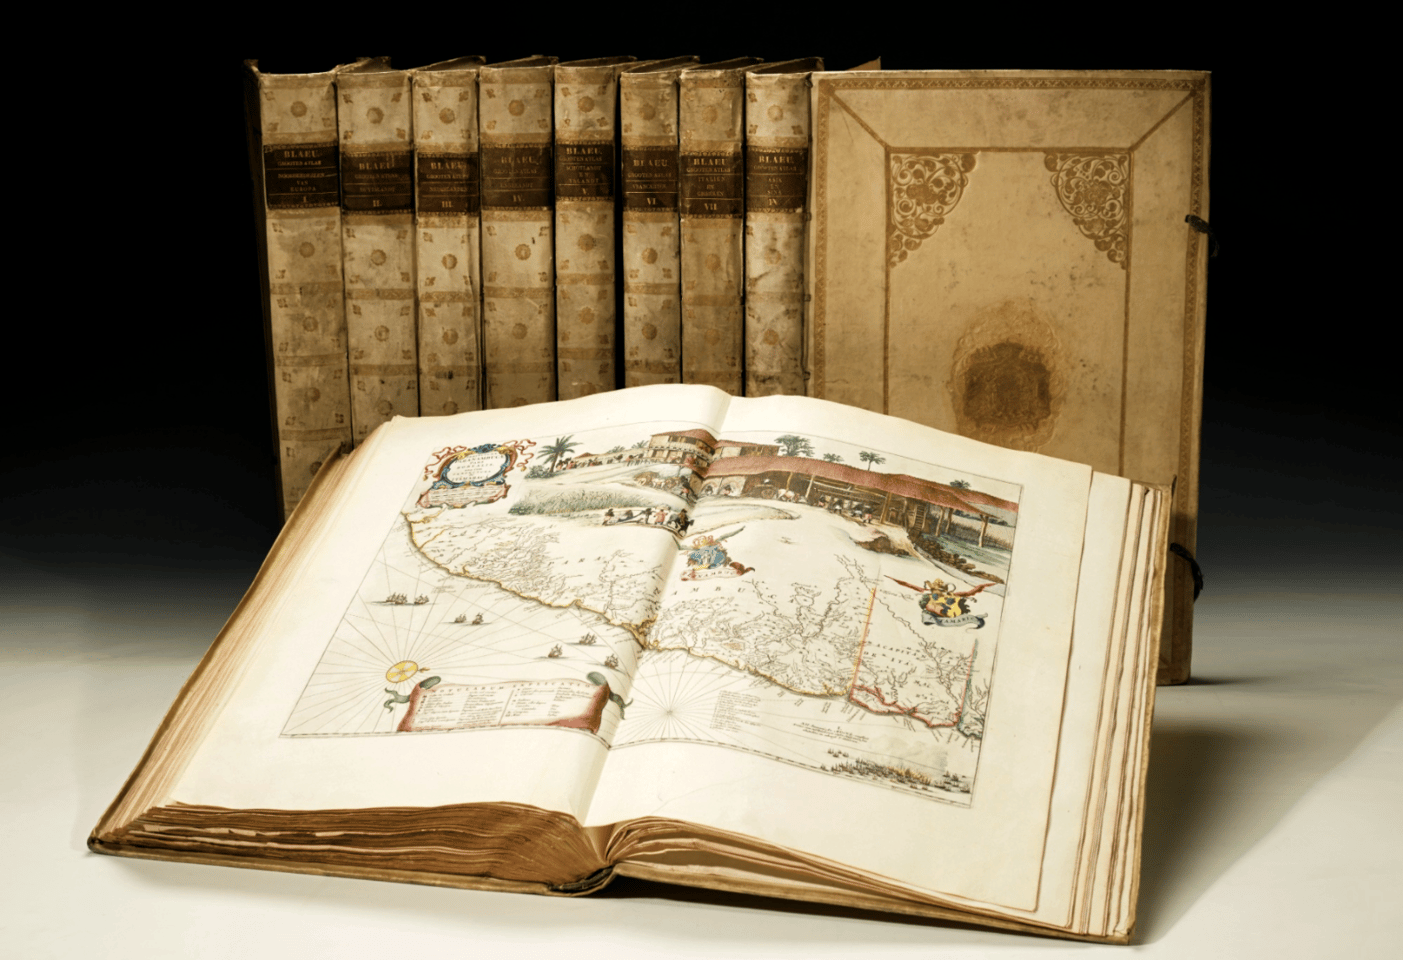 """TheGrooten Atlas isone of the many remarkable achievements of a father and son who contributed so much to our understanding of the world. Both Dutch cartographers, atlas and globe makers and publishers,Johannes Blaeu(1596 – 1673) was the son of cartographerWillem Blaeu(1570 - 1630).TheAtlas Majorwas published between 1662 and 1672, and the Dutch version was named theGrooten Atlas. It was the largest and most expensive book published in the 17th century and in the auction description of the most valuable copy sold to date (sold by Sothebys in November, 2015 for $883,944 - £581,000) it was described as """"the most famous atlas in the history of printed maps"""" and """"the most magnificent work of its kind ever produced."""" This copy sold for $567,366 (£389,000) by Sothebys on April 28, 2016."""